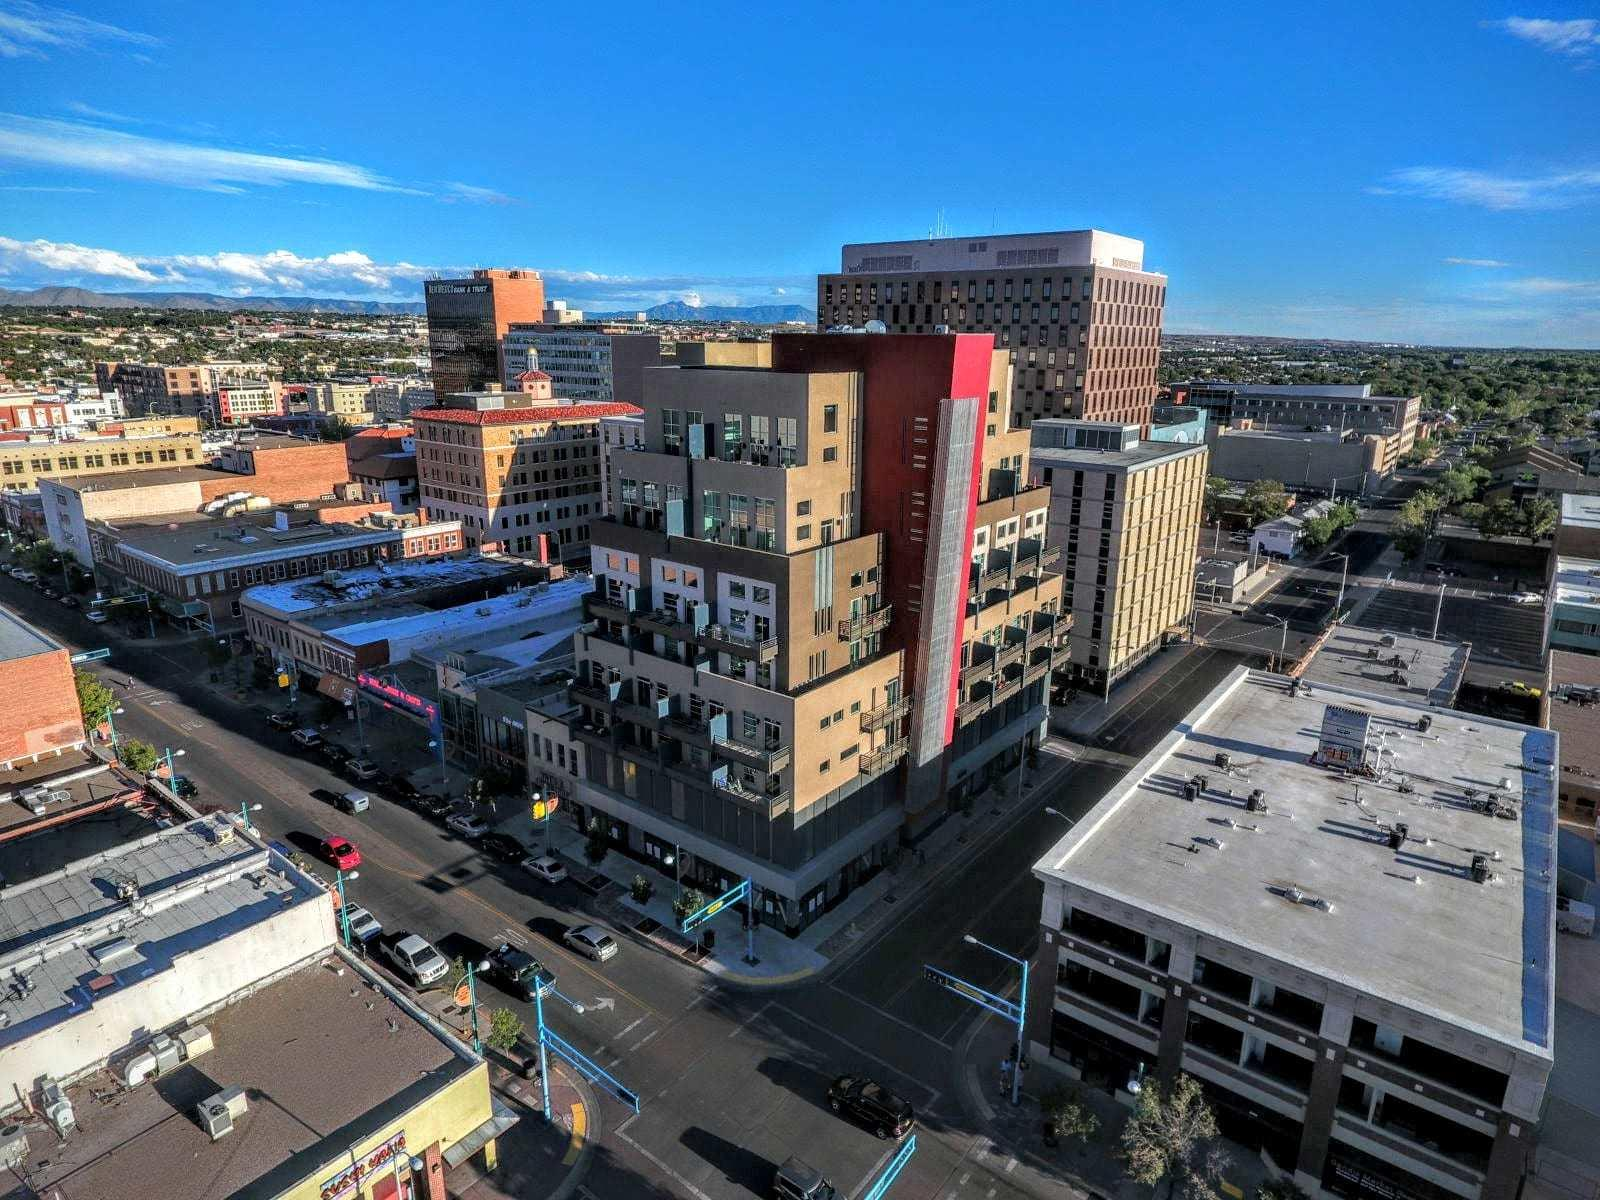 Get back to life downtown ABQ!  Beautifully appointed downtown Anasazi loft features modern finishes and a private balcony. This one bedroom unit is flooded with beautiful natural light any artist would love.  The city life views, sunsets, Bosque views are outstanding!  Walk/Bike score is great!  Tile floors throughout, quartz countertops, stainless appliances, stackable washer/dryer.  Off street secured parking garage to include 1 car space   Shown by appointment only Monday - Friday 9:00 - 5:15.